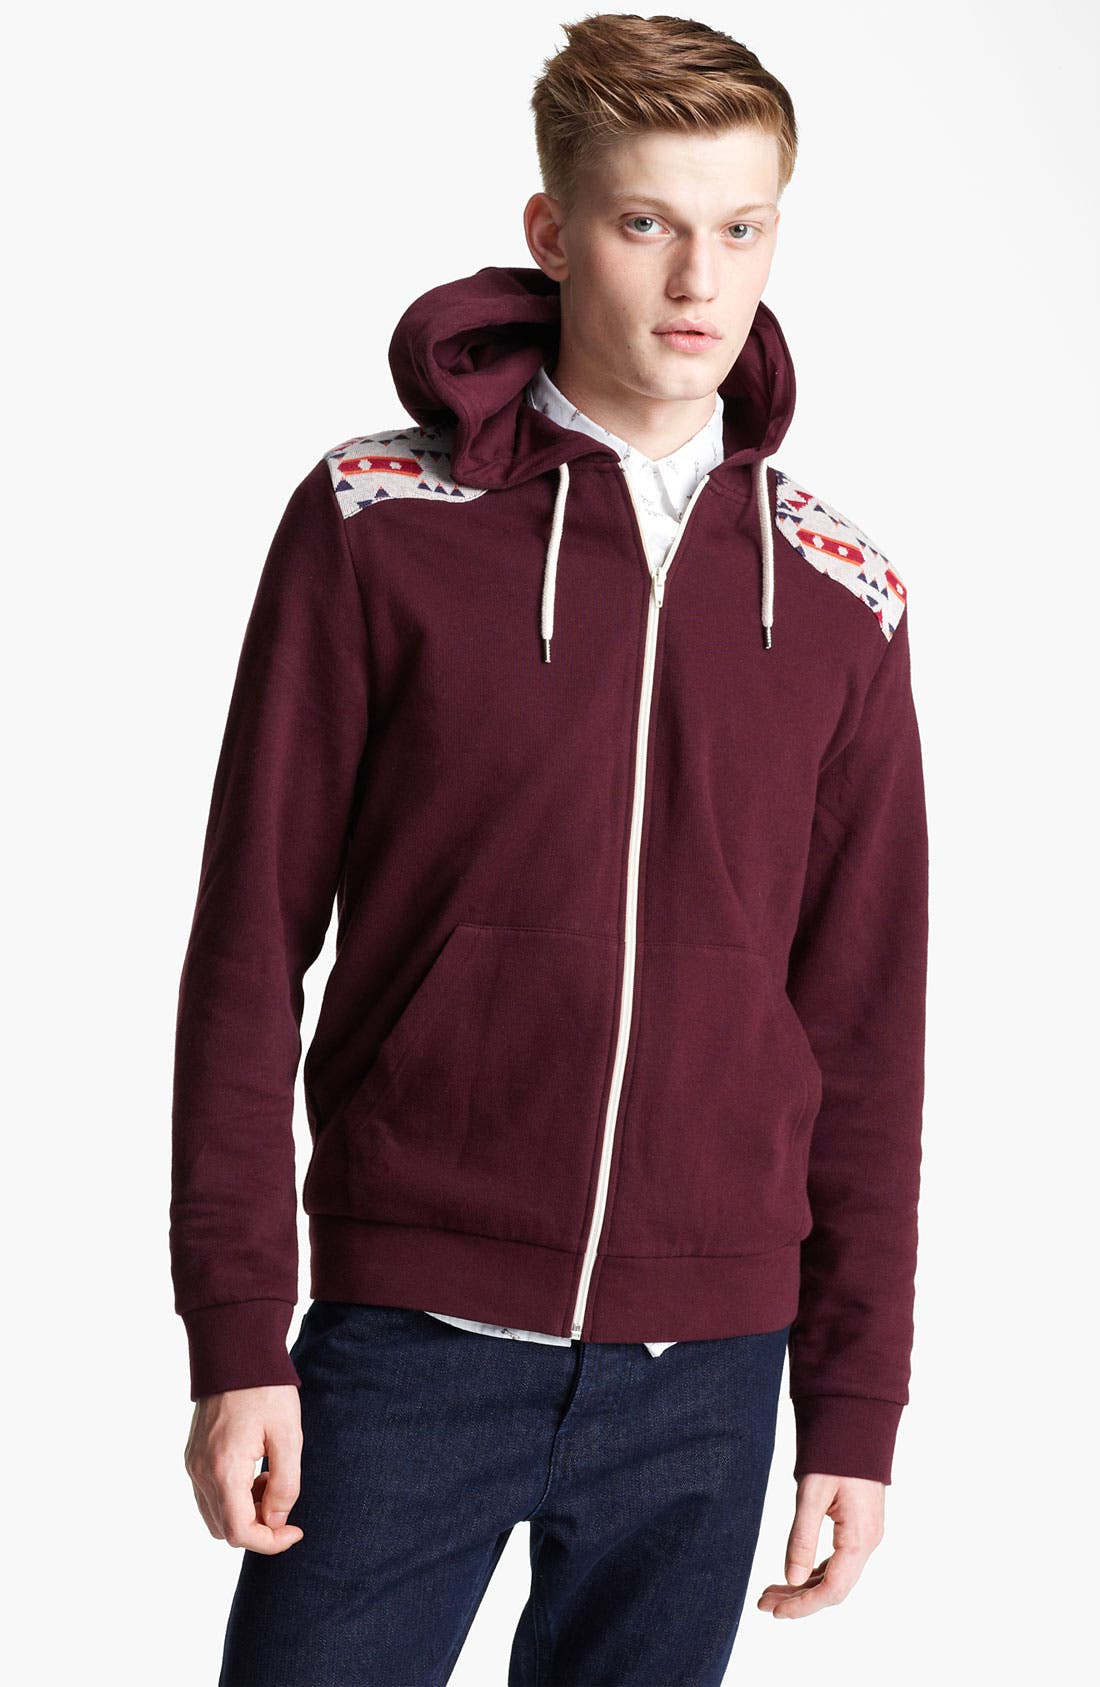 Alternate Image 1 Selected - Topman 'Fudge' Zip Hoodie